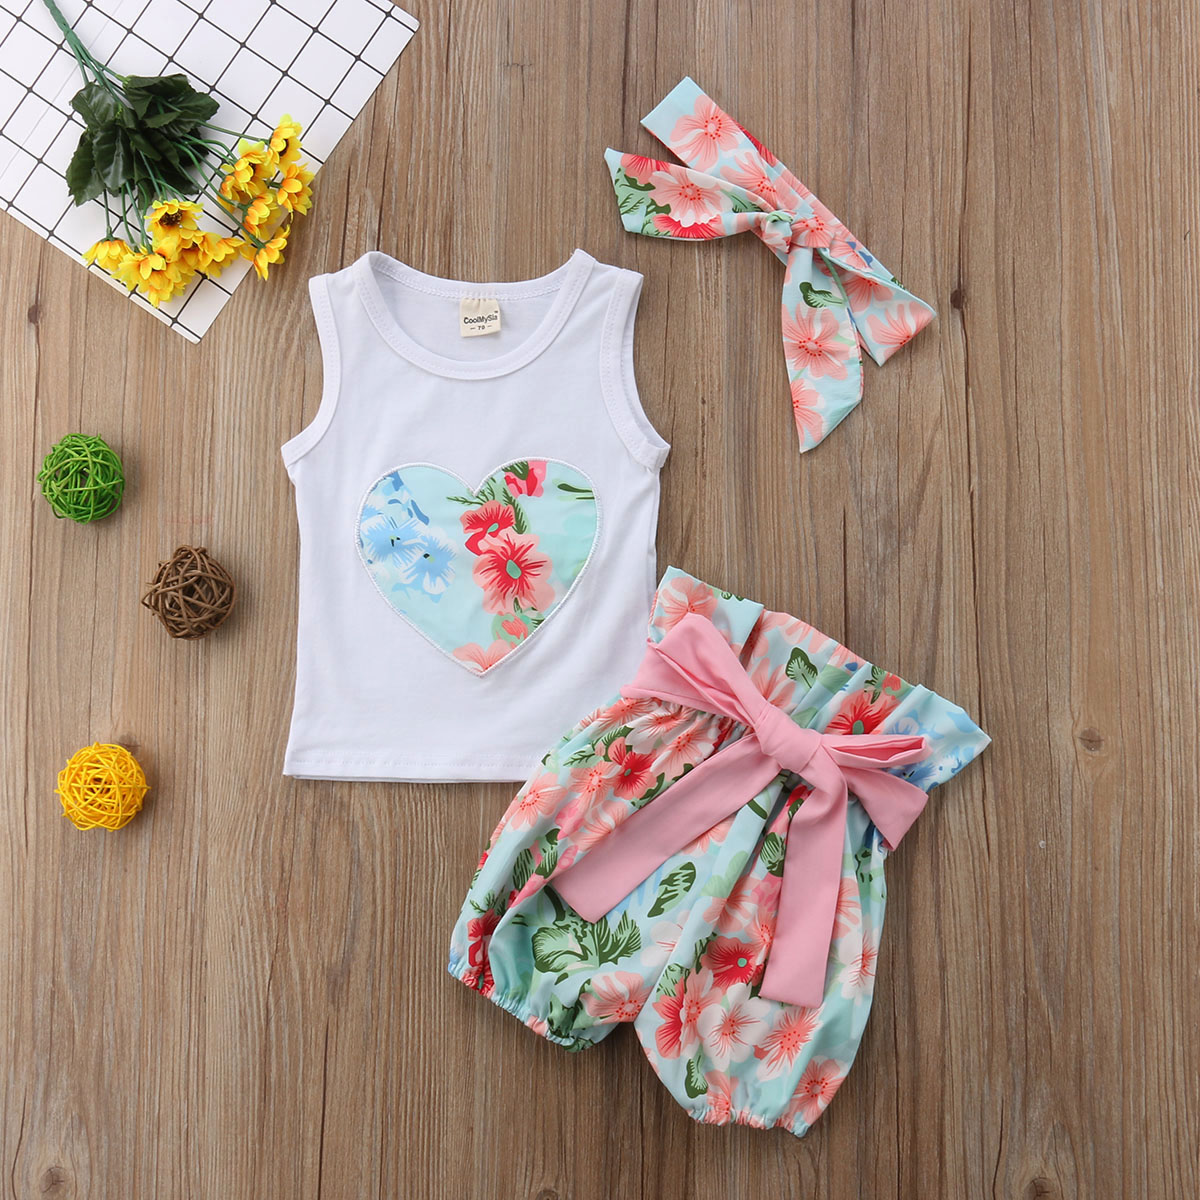 Newborn Toddler Kids Baby Girls Floral Clothes Tops Vest Sleeveless Shirt Bowkont Shorts Outfits Set Cotton Baby Girl 1-5T